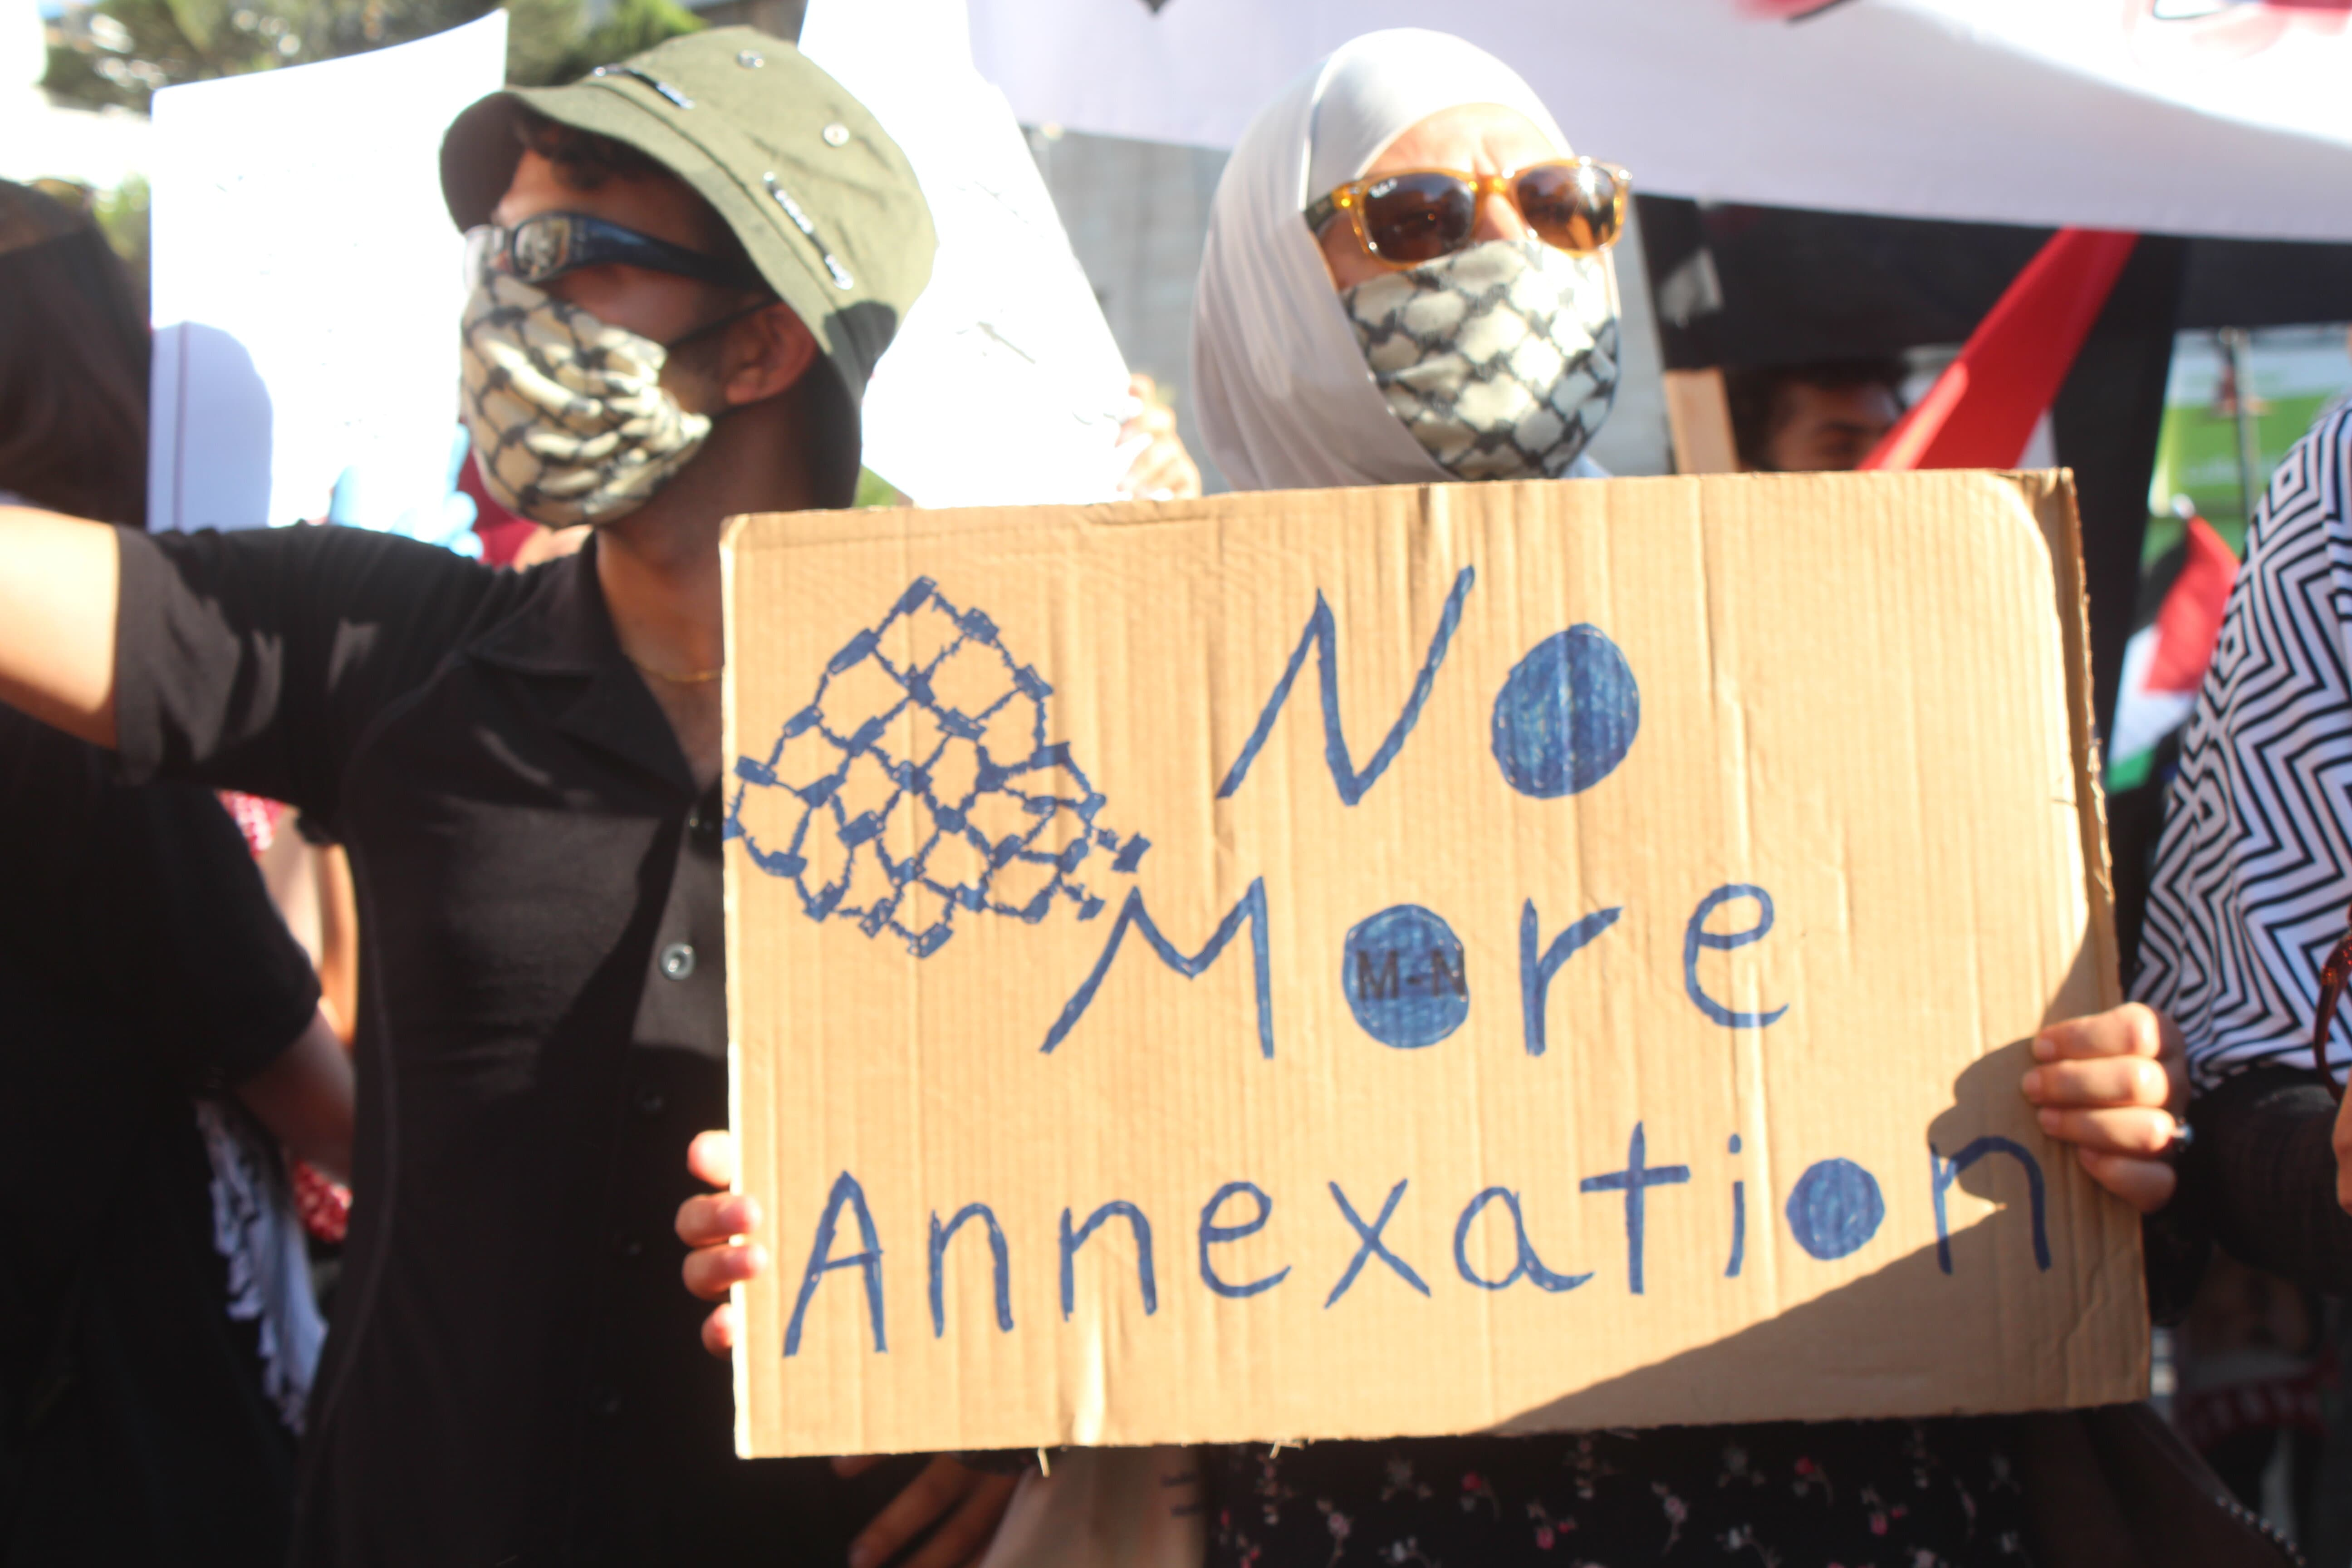 A demonstrator holds up a sign saying 'No more annexation' at a protest in Ramallah on 1 July